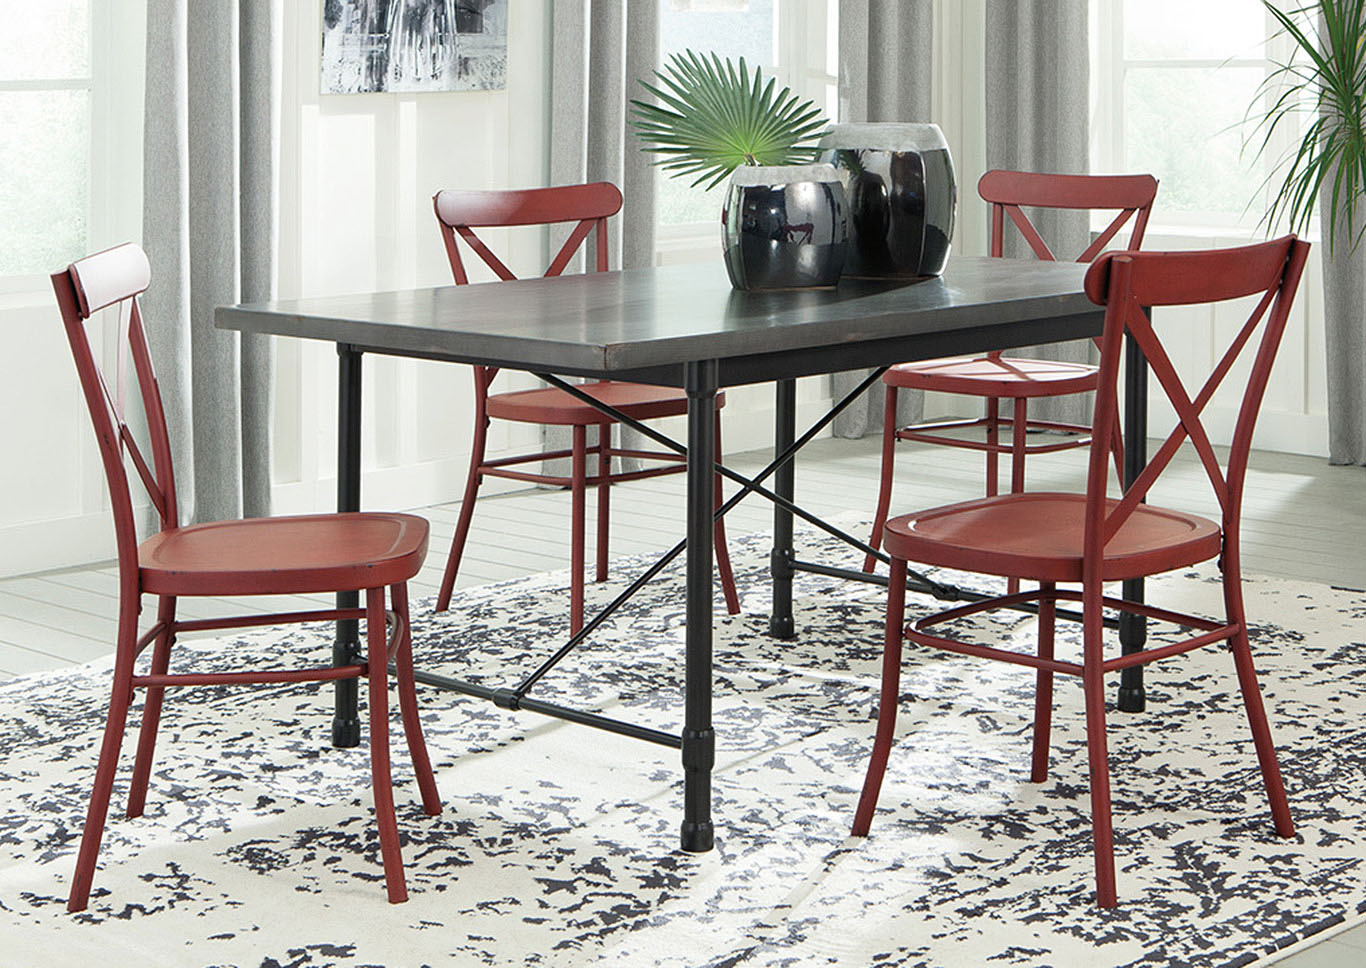 Utah Furniture Direct Minnona Aged Steel Rectangular Dining Table W 4 Red Side Chairs